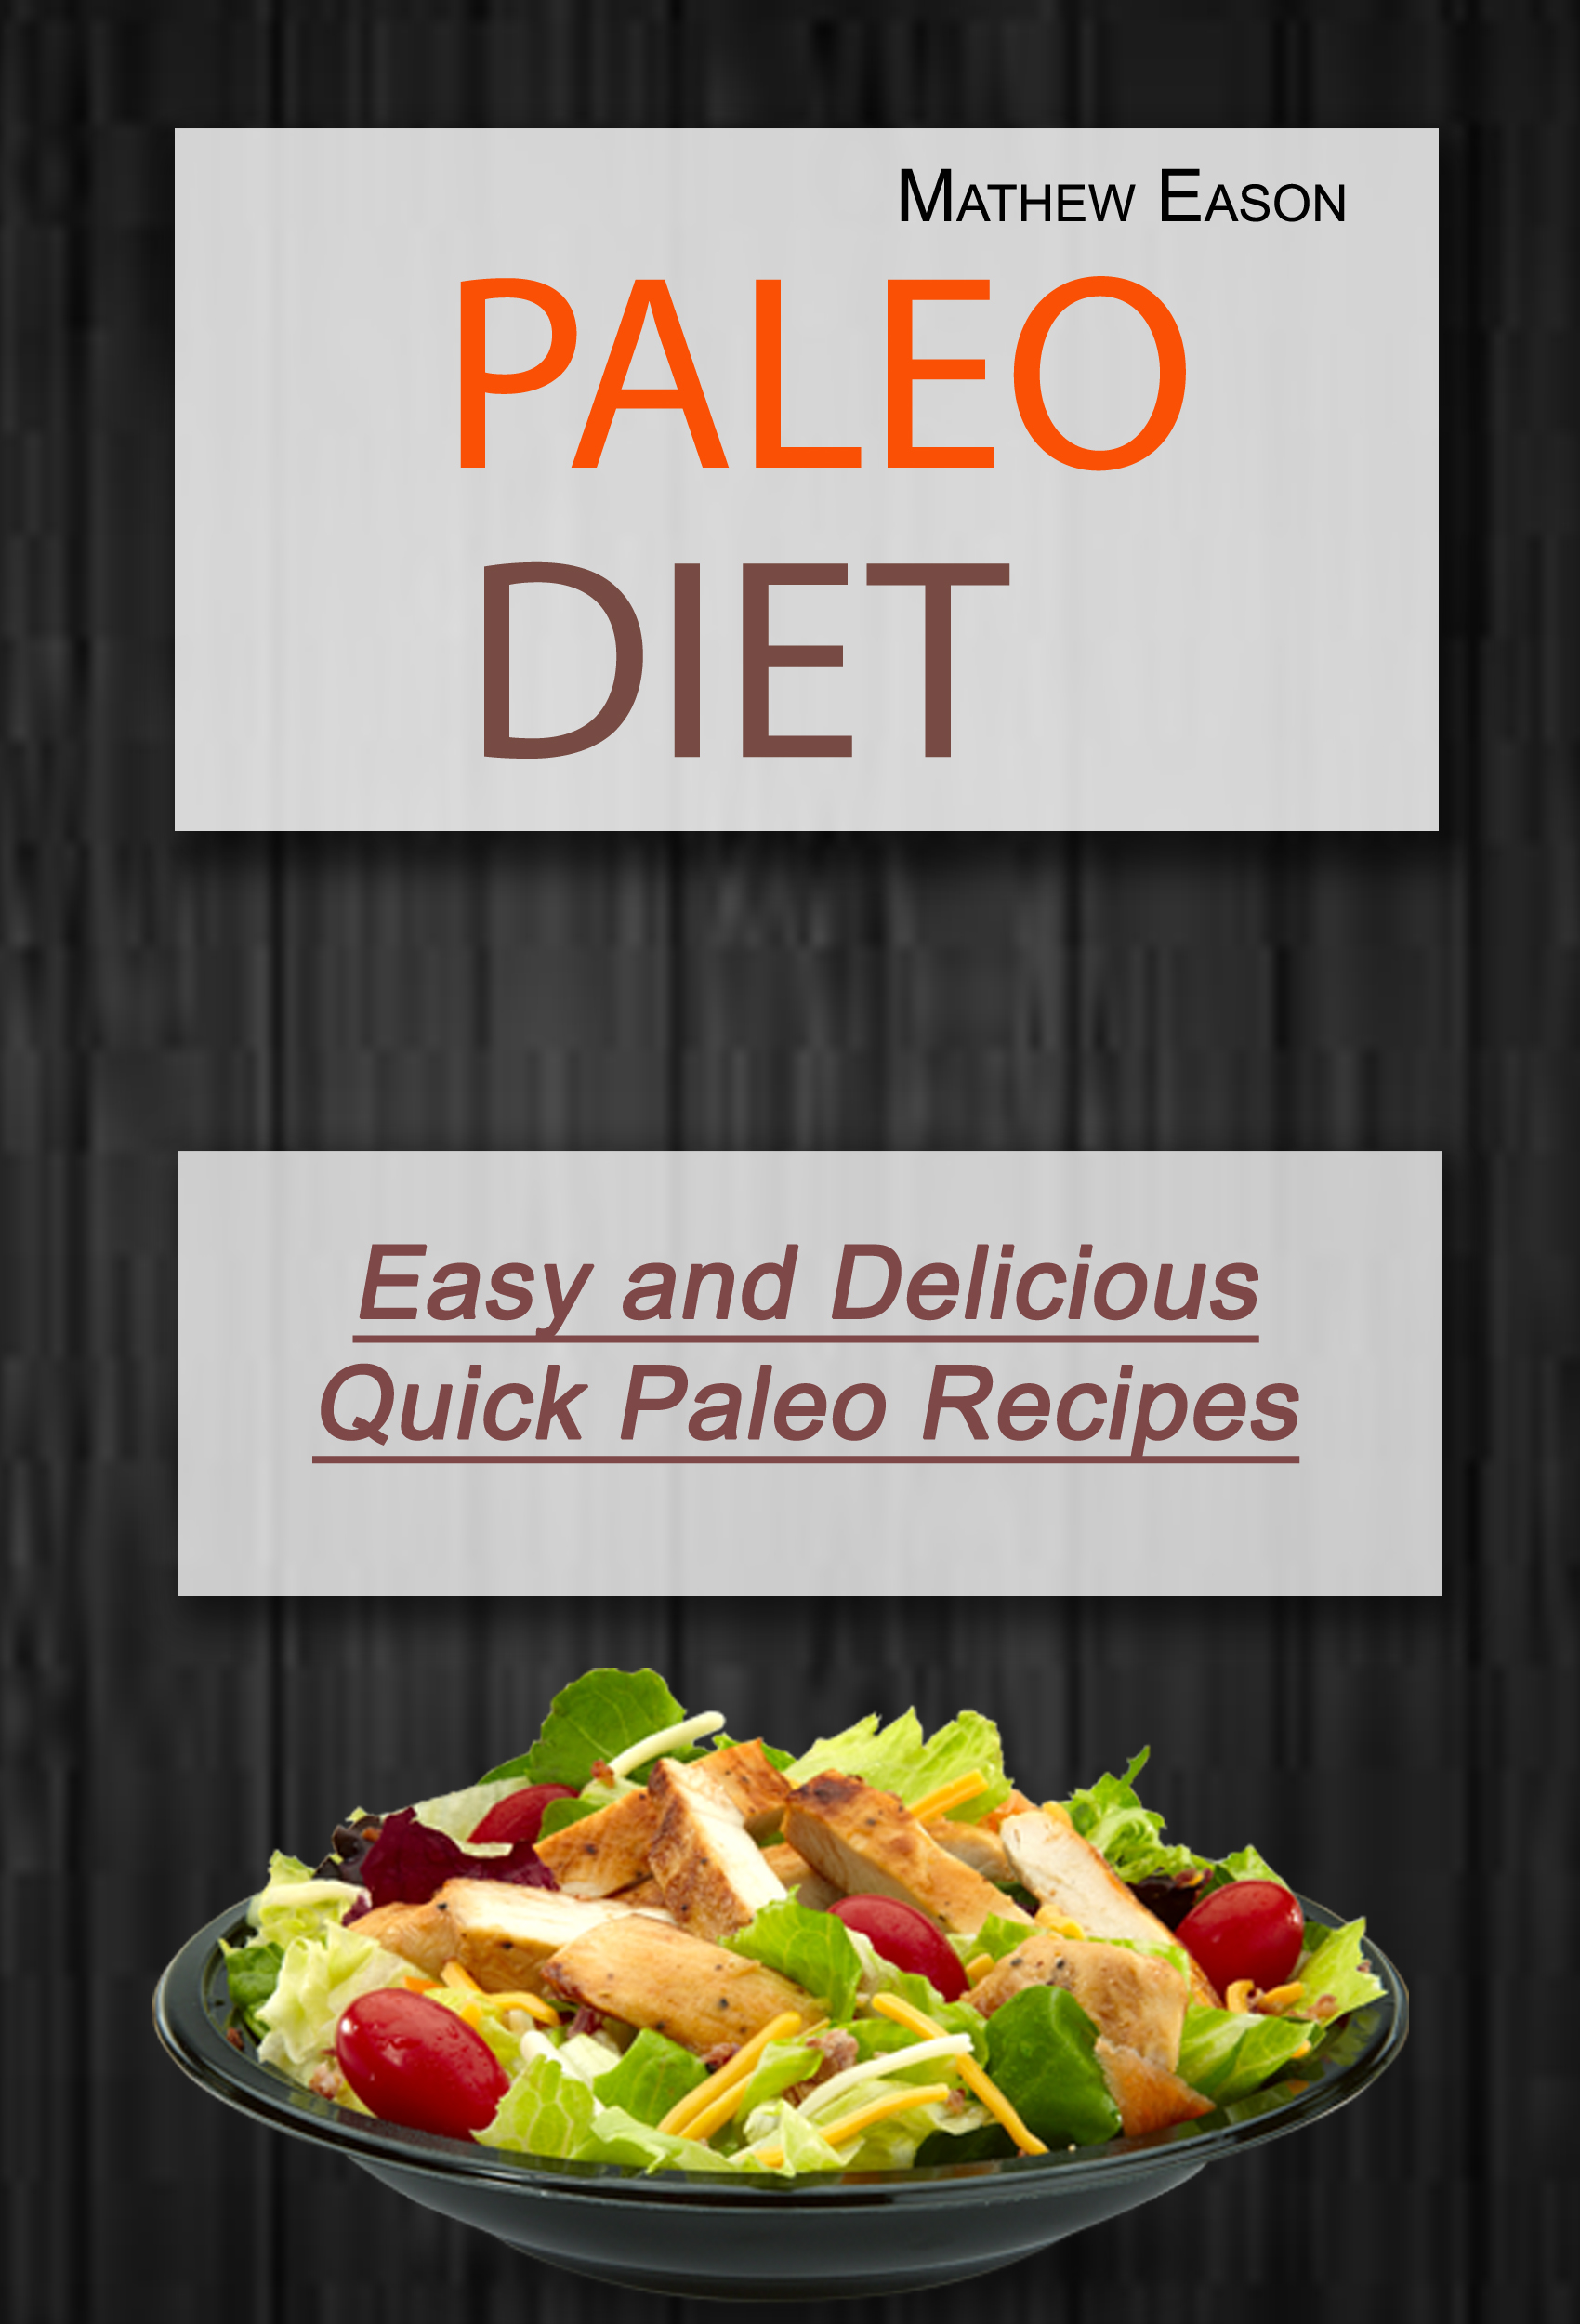 Paleo diet:  simple, easy and delicious quick paleo recipes